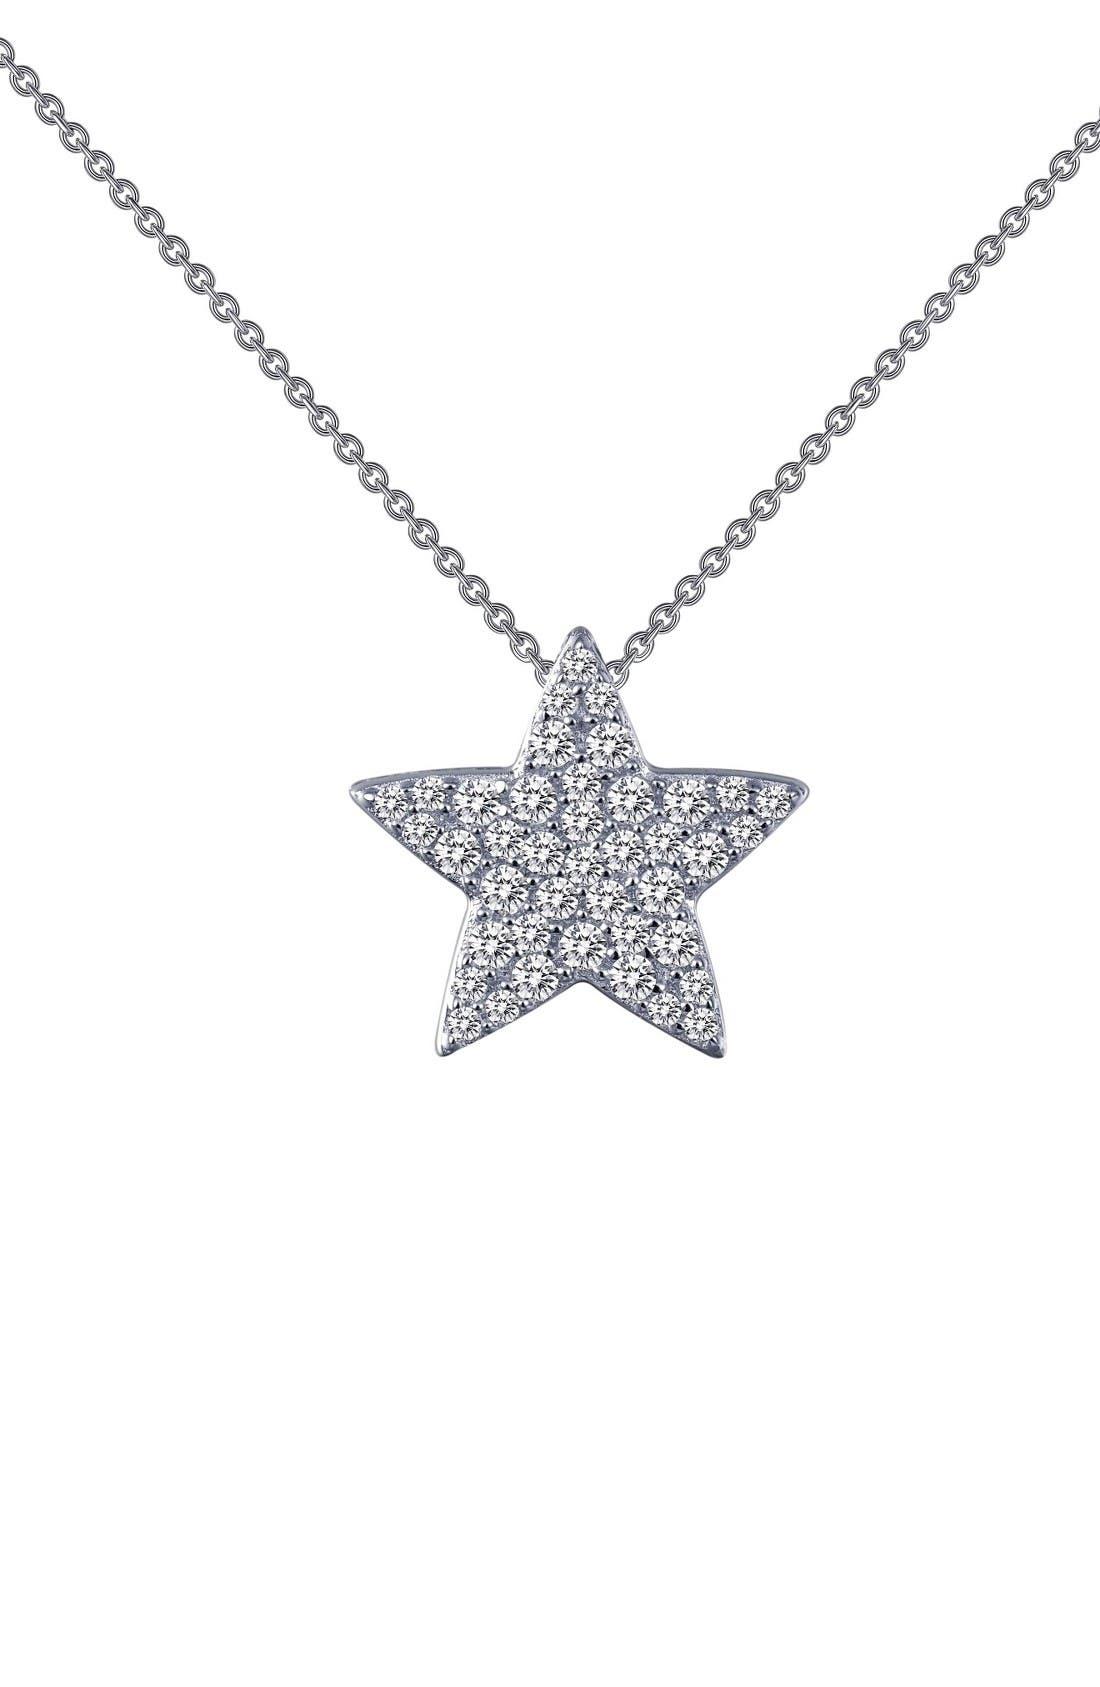 Main Image - Lafonn Simulated Diamond Star Pendant Necklace